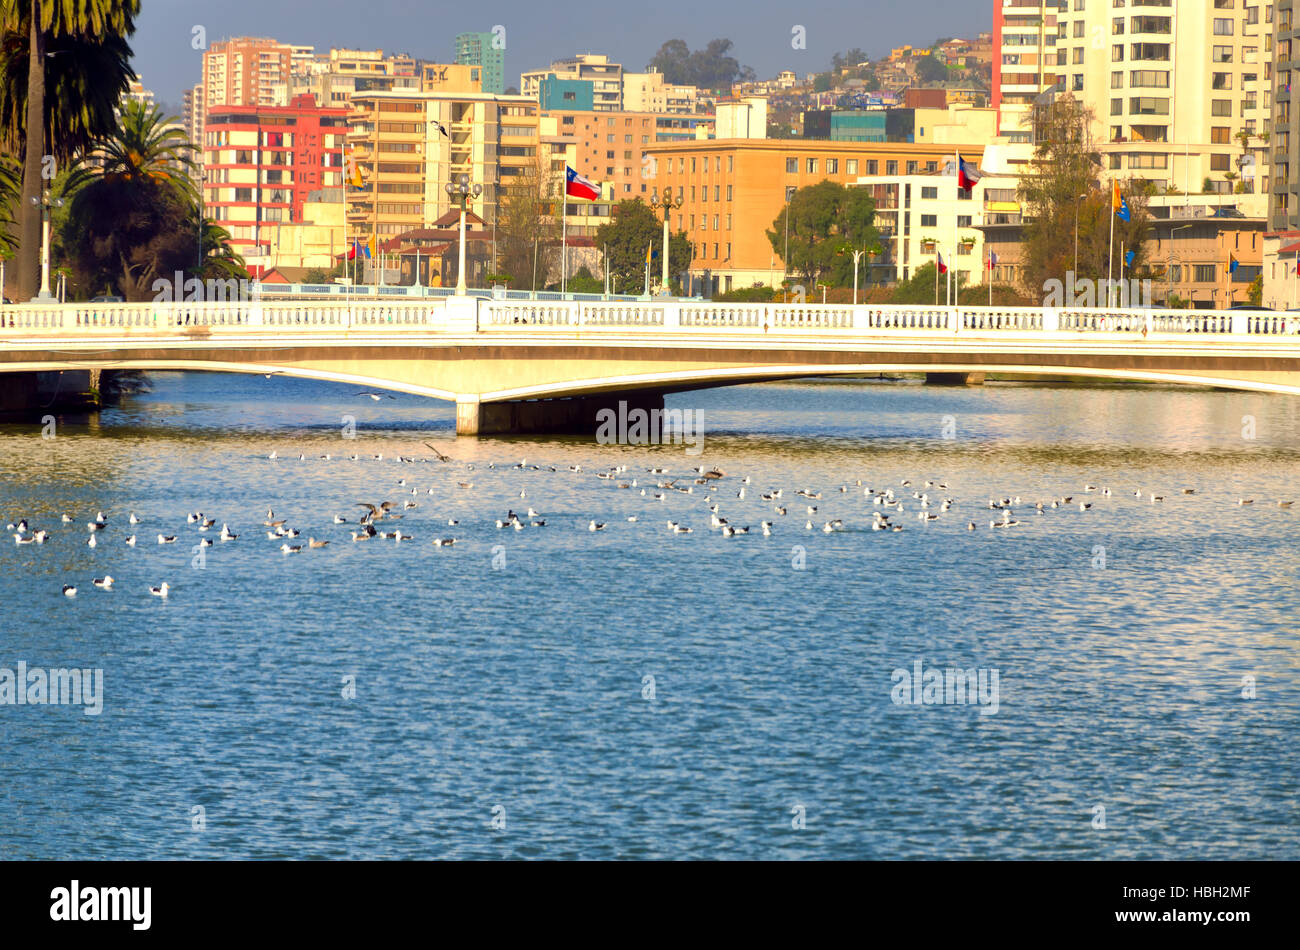 Modern buildings provide a colorful backdrop for a low bridge in Vina del Mar, Chile - Stock Image